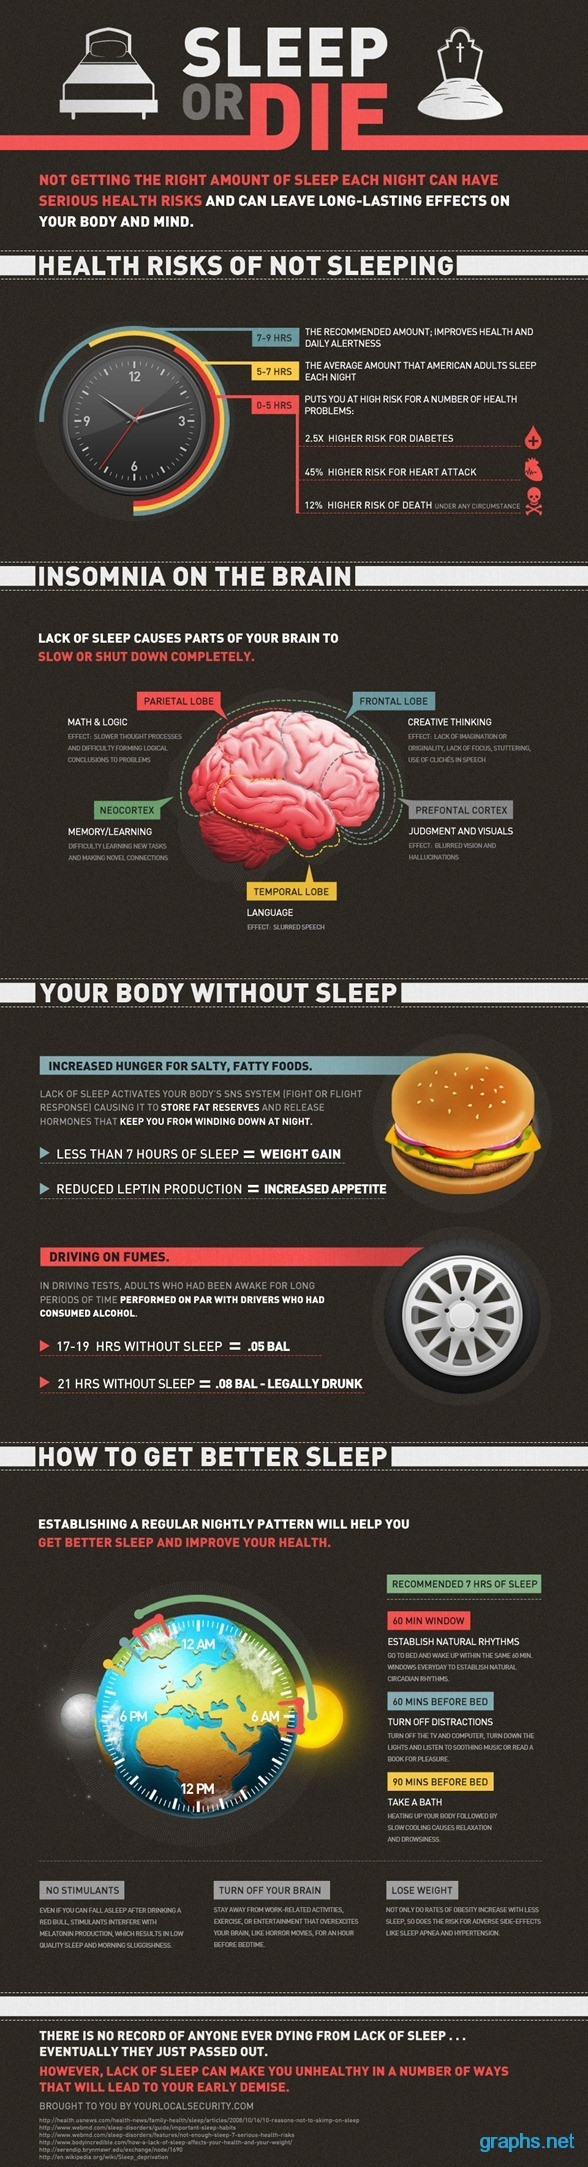 health risks of no sleep